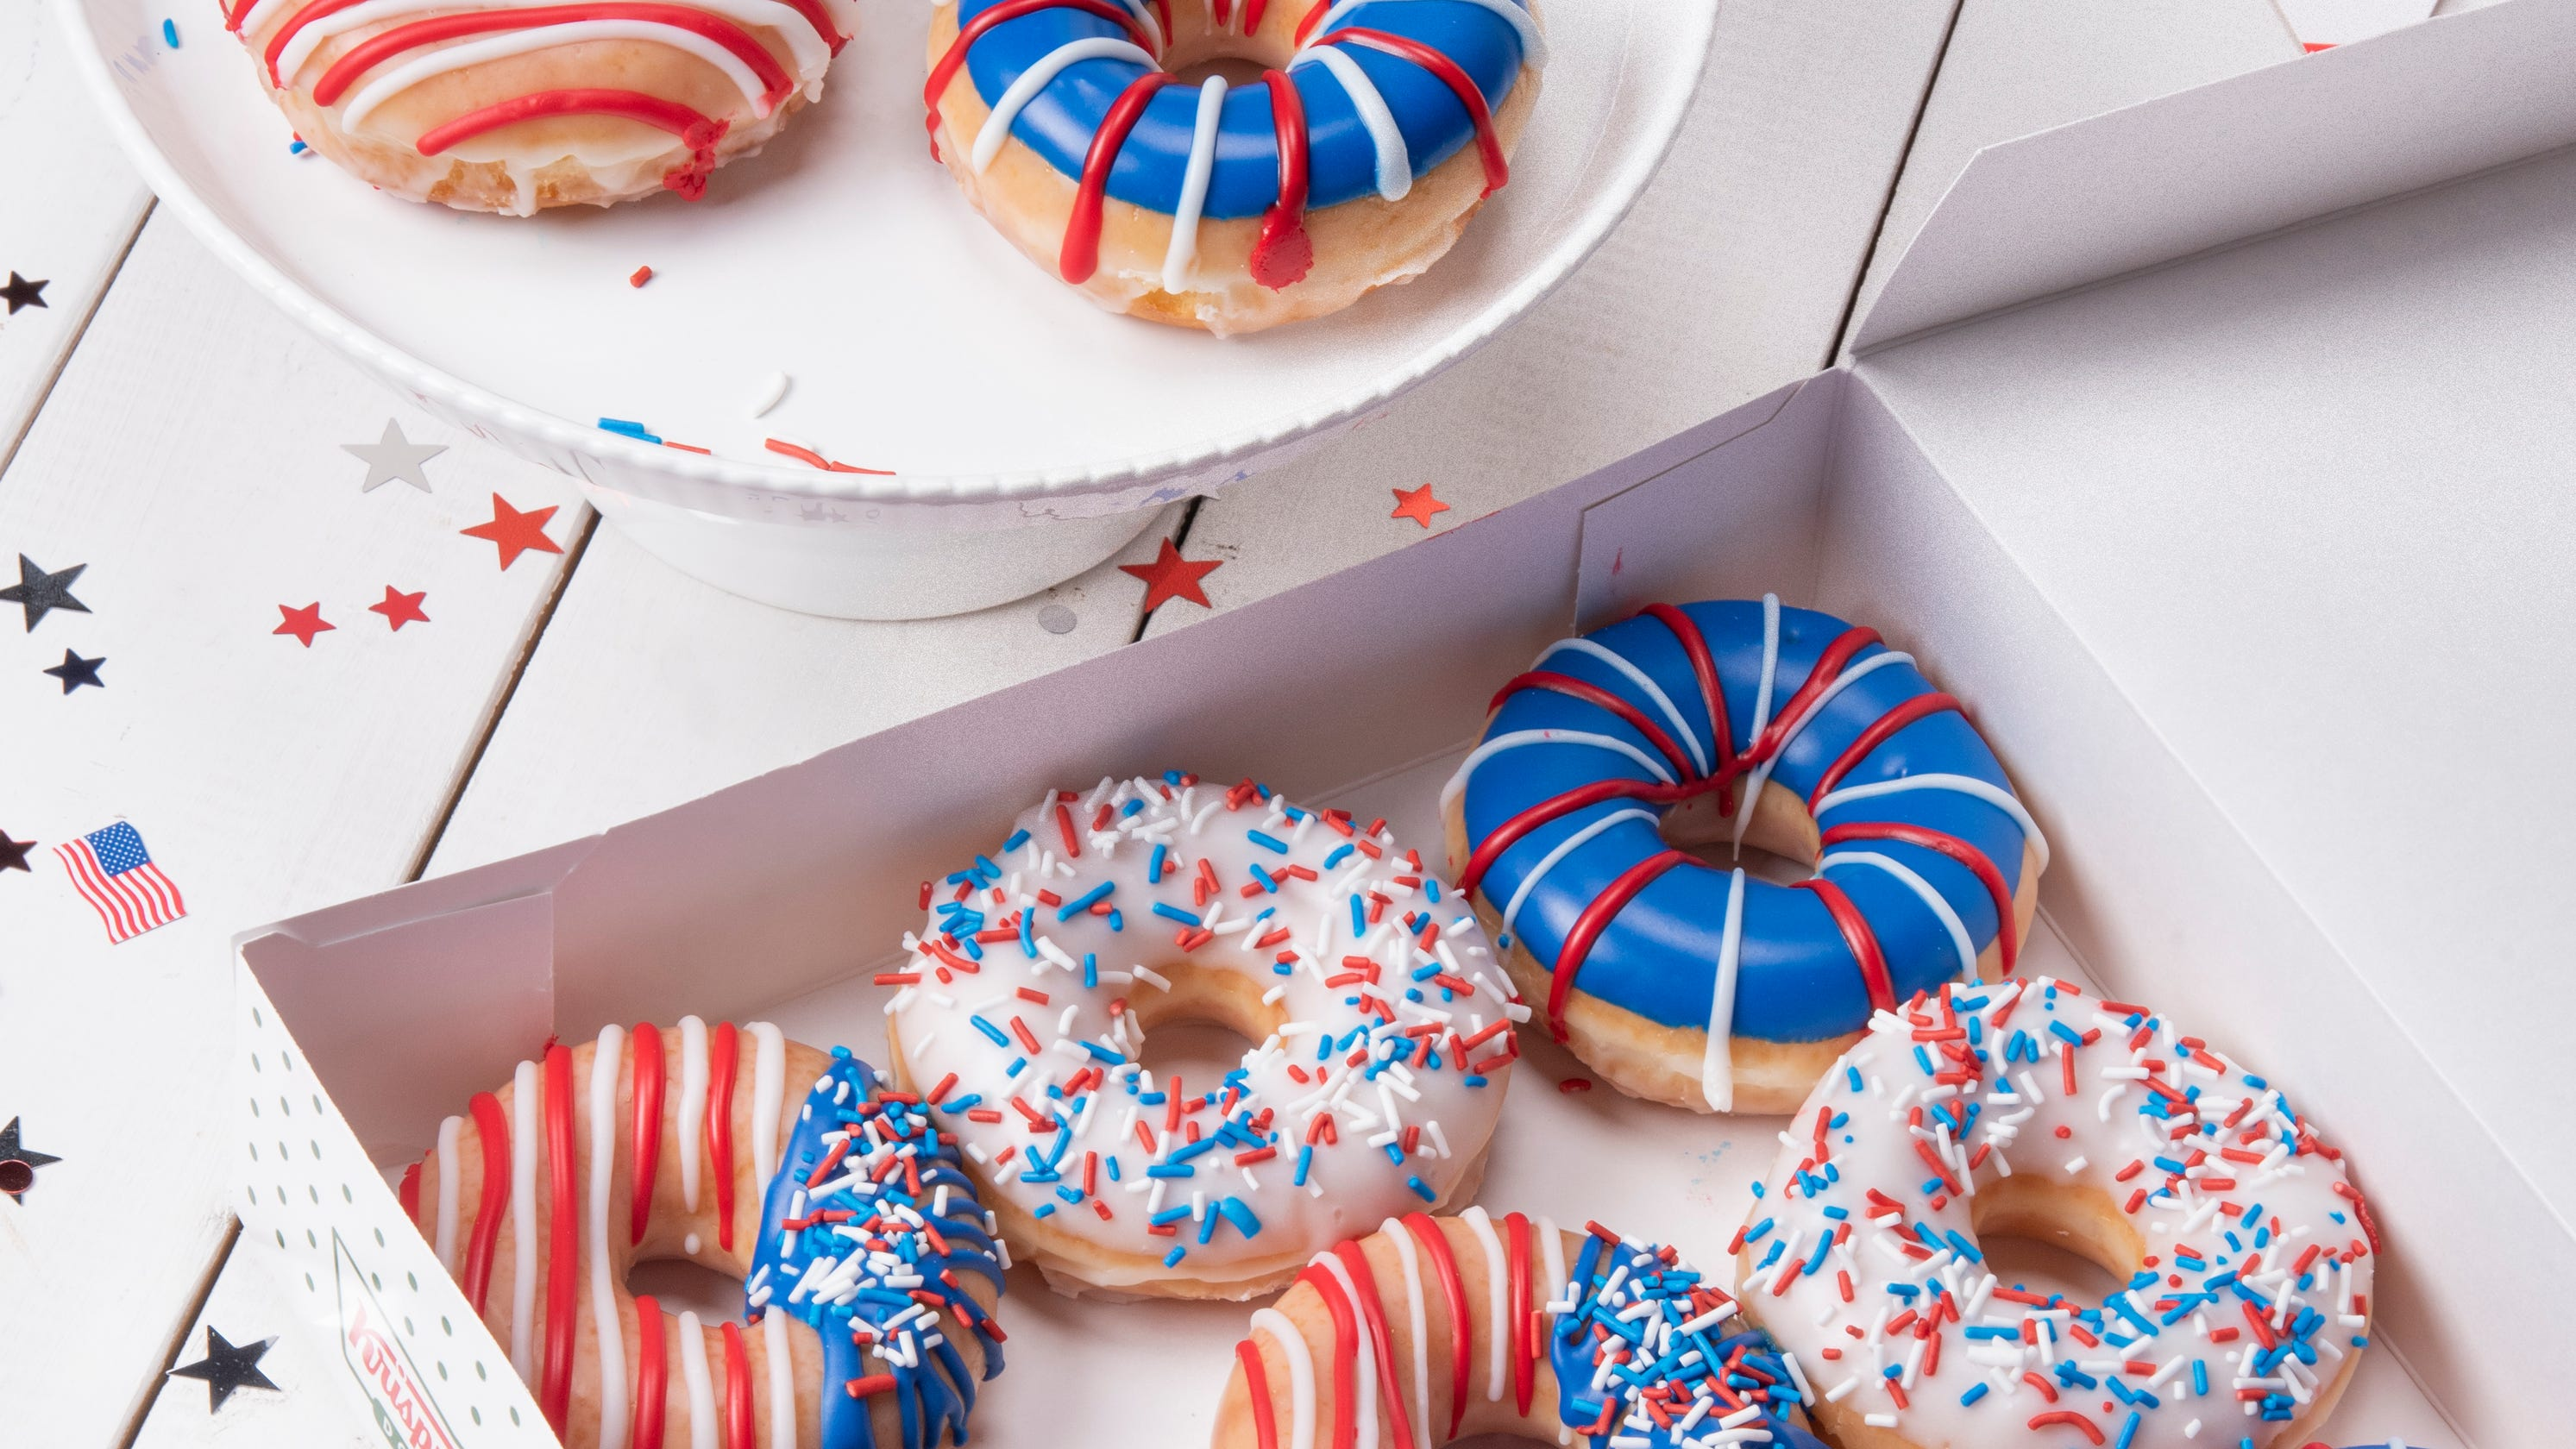 July 4th food deals: Where to get free food and patriotic